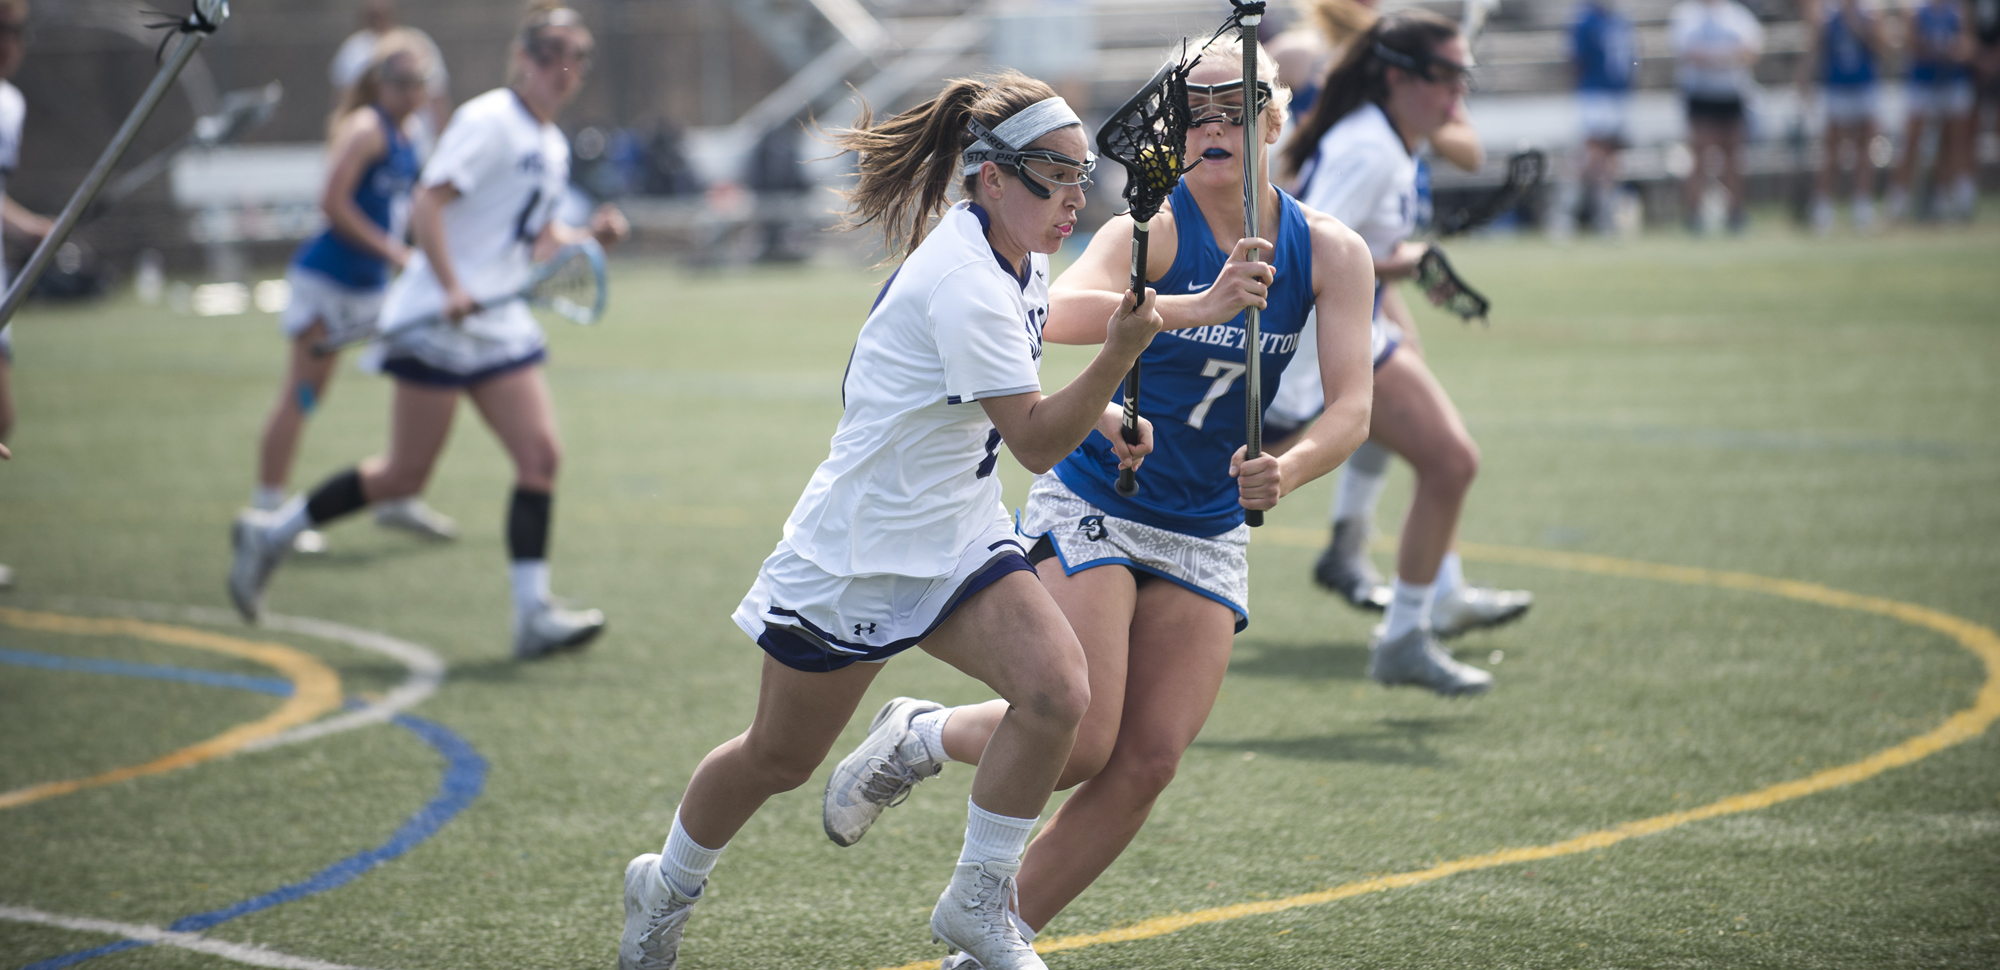 Women's Lacrosse Heads to Catholic on Saturday for Landmark Championship Game